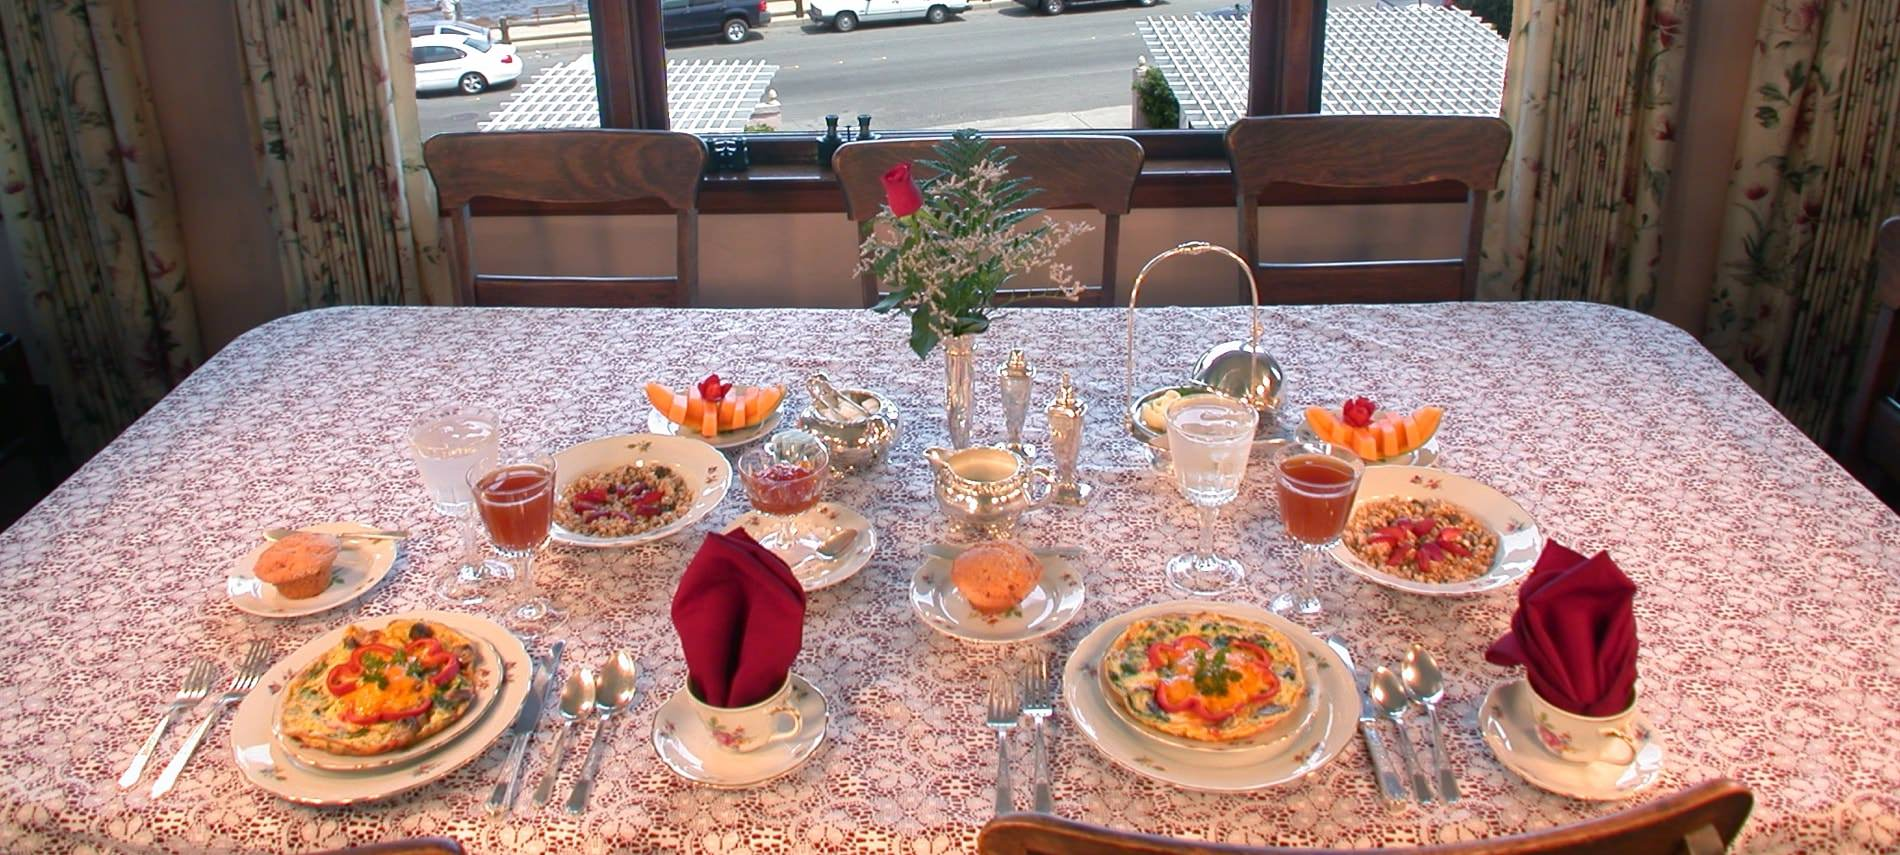 Dining table with white lace topper, set for two with plates of baked quiche, muffins, granola and fruit, juice and water